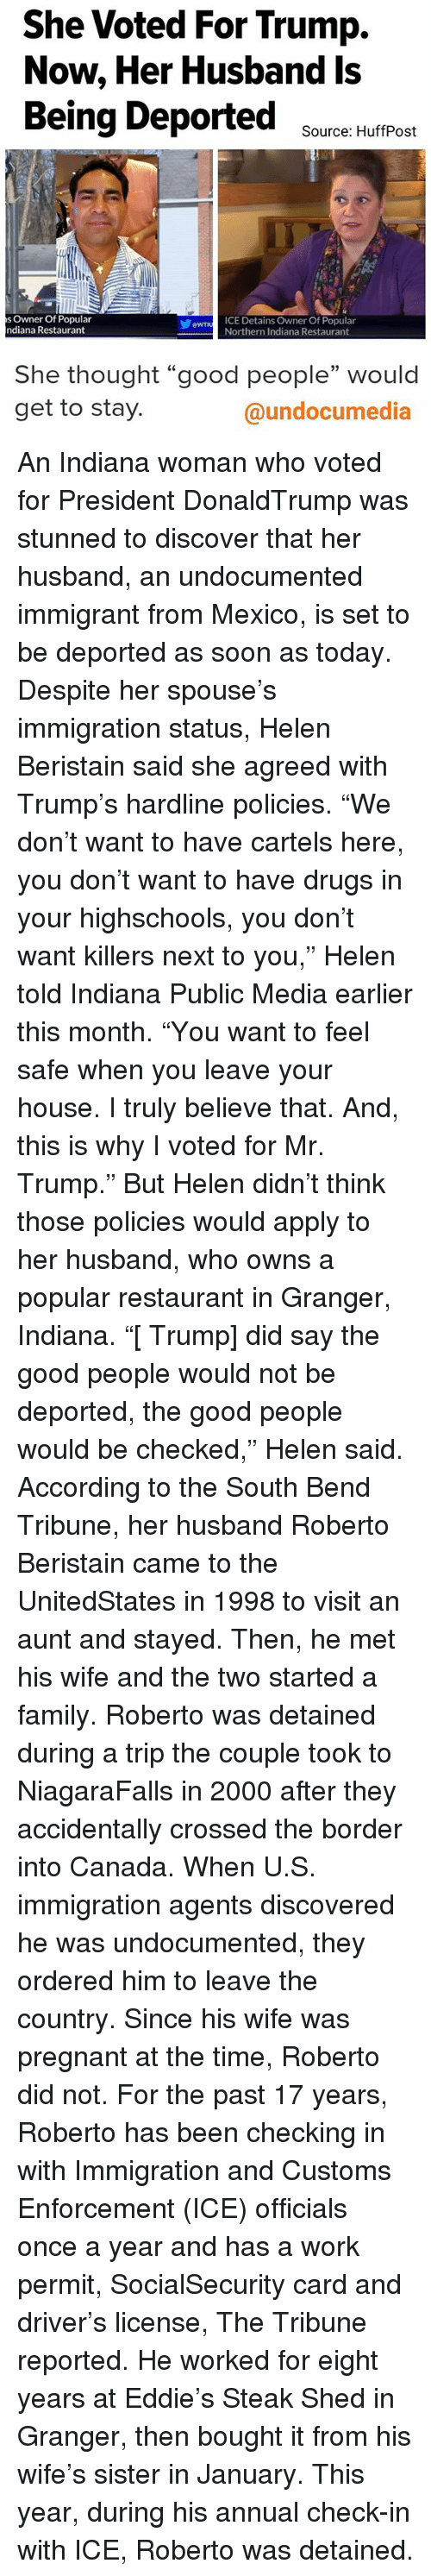 """tripped: She Voted For Trump.  Now, Her Husband Is  Being Deported  Source: HuffPost  as Owner Of Popular  Tu ICE Detains Owner Of Popular  ndiana Restaurant  Northern Indiana Restaurant  She thought """"good people"""" would  get to stay.  @undocumedia An Indiana woman who voted for President DonaldTrump was stunned to discover that her husband, an undocumented immigrant from Mexico, is set to be deported as soon as today. Despite her spouse's immigration status, Helen Beristain said she agreed with Trump's hardline policies. """"We don't want to have cartels here, you don't want to have drugs in your highschools, you don't want killers next to you,"""" Helen told Indiana Public Media earlier this month. """"You want to feel safe when you leave your house. I truly believe that. And, this is why I voted for Mr. Trump."""" But Helen didn't think those policies would apply to her husband, who owns a popular restaurant in Granger, Indiana. """"[ Trump] did say the good people would not be deported, the good people would be checked,"""" Helen said. According to the South Bend Tribune, her husband Roberto Beristain came to the UnitedStates in 1998 to visit an aunt and stayed. Then, he met his wife and the two started a family. Roberto was detained during a trip the couple took to NiagaraFalls in 2000 after they accidentally crossed the border into Canada. When U.S. immigration agents discovered he was undocumented, they ordered him to leave the country. Since his wife was pregnant at the time, Roberto did not. For the past 17 years, Roberto has been checking in with Immigration and Customs Enforcement (ICE) officials once a year and has a work permit, SocialSecurity card and driver's license, The Tribune reported. He worked for eight years at Eddie's Steak Shed in Granger, then bought it from his wife's sister in January. This year, during his annual check-in with ICE, Roberto was detained."""